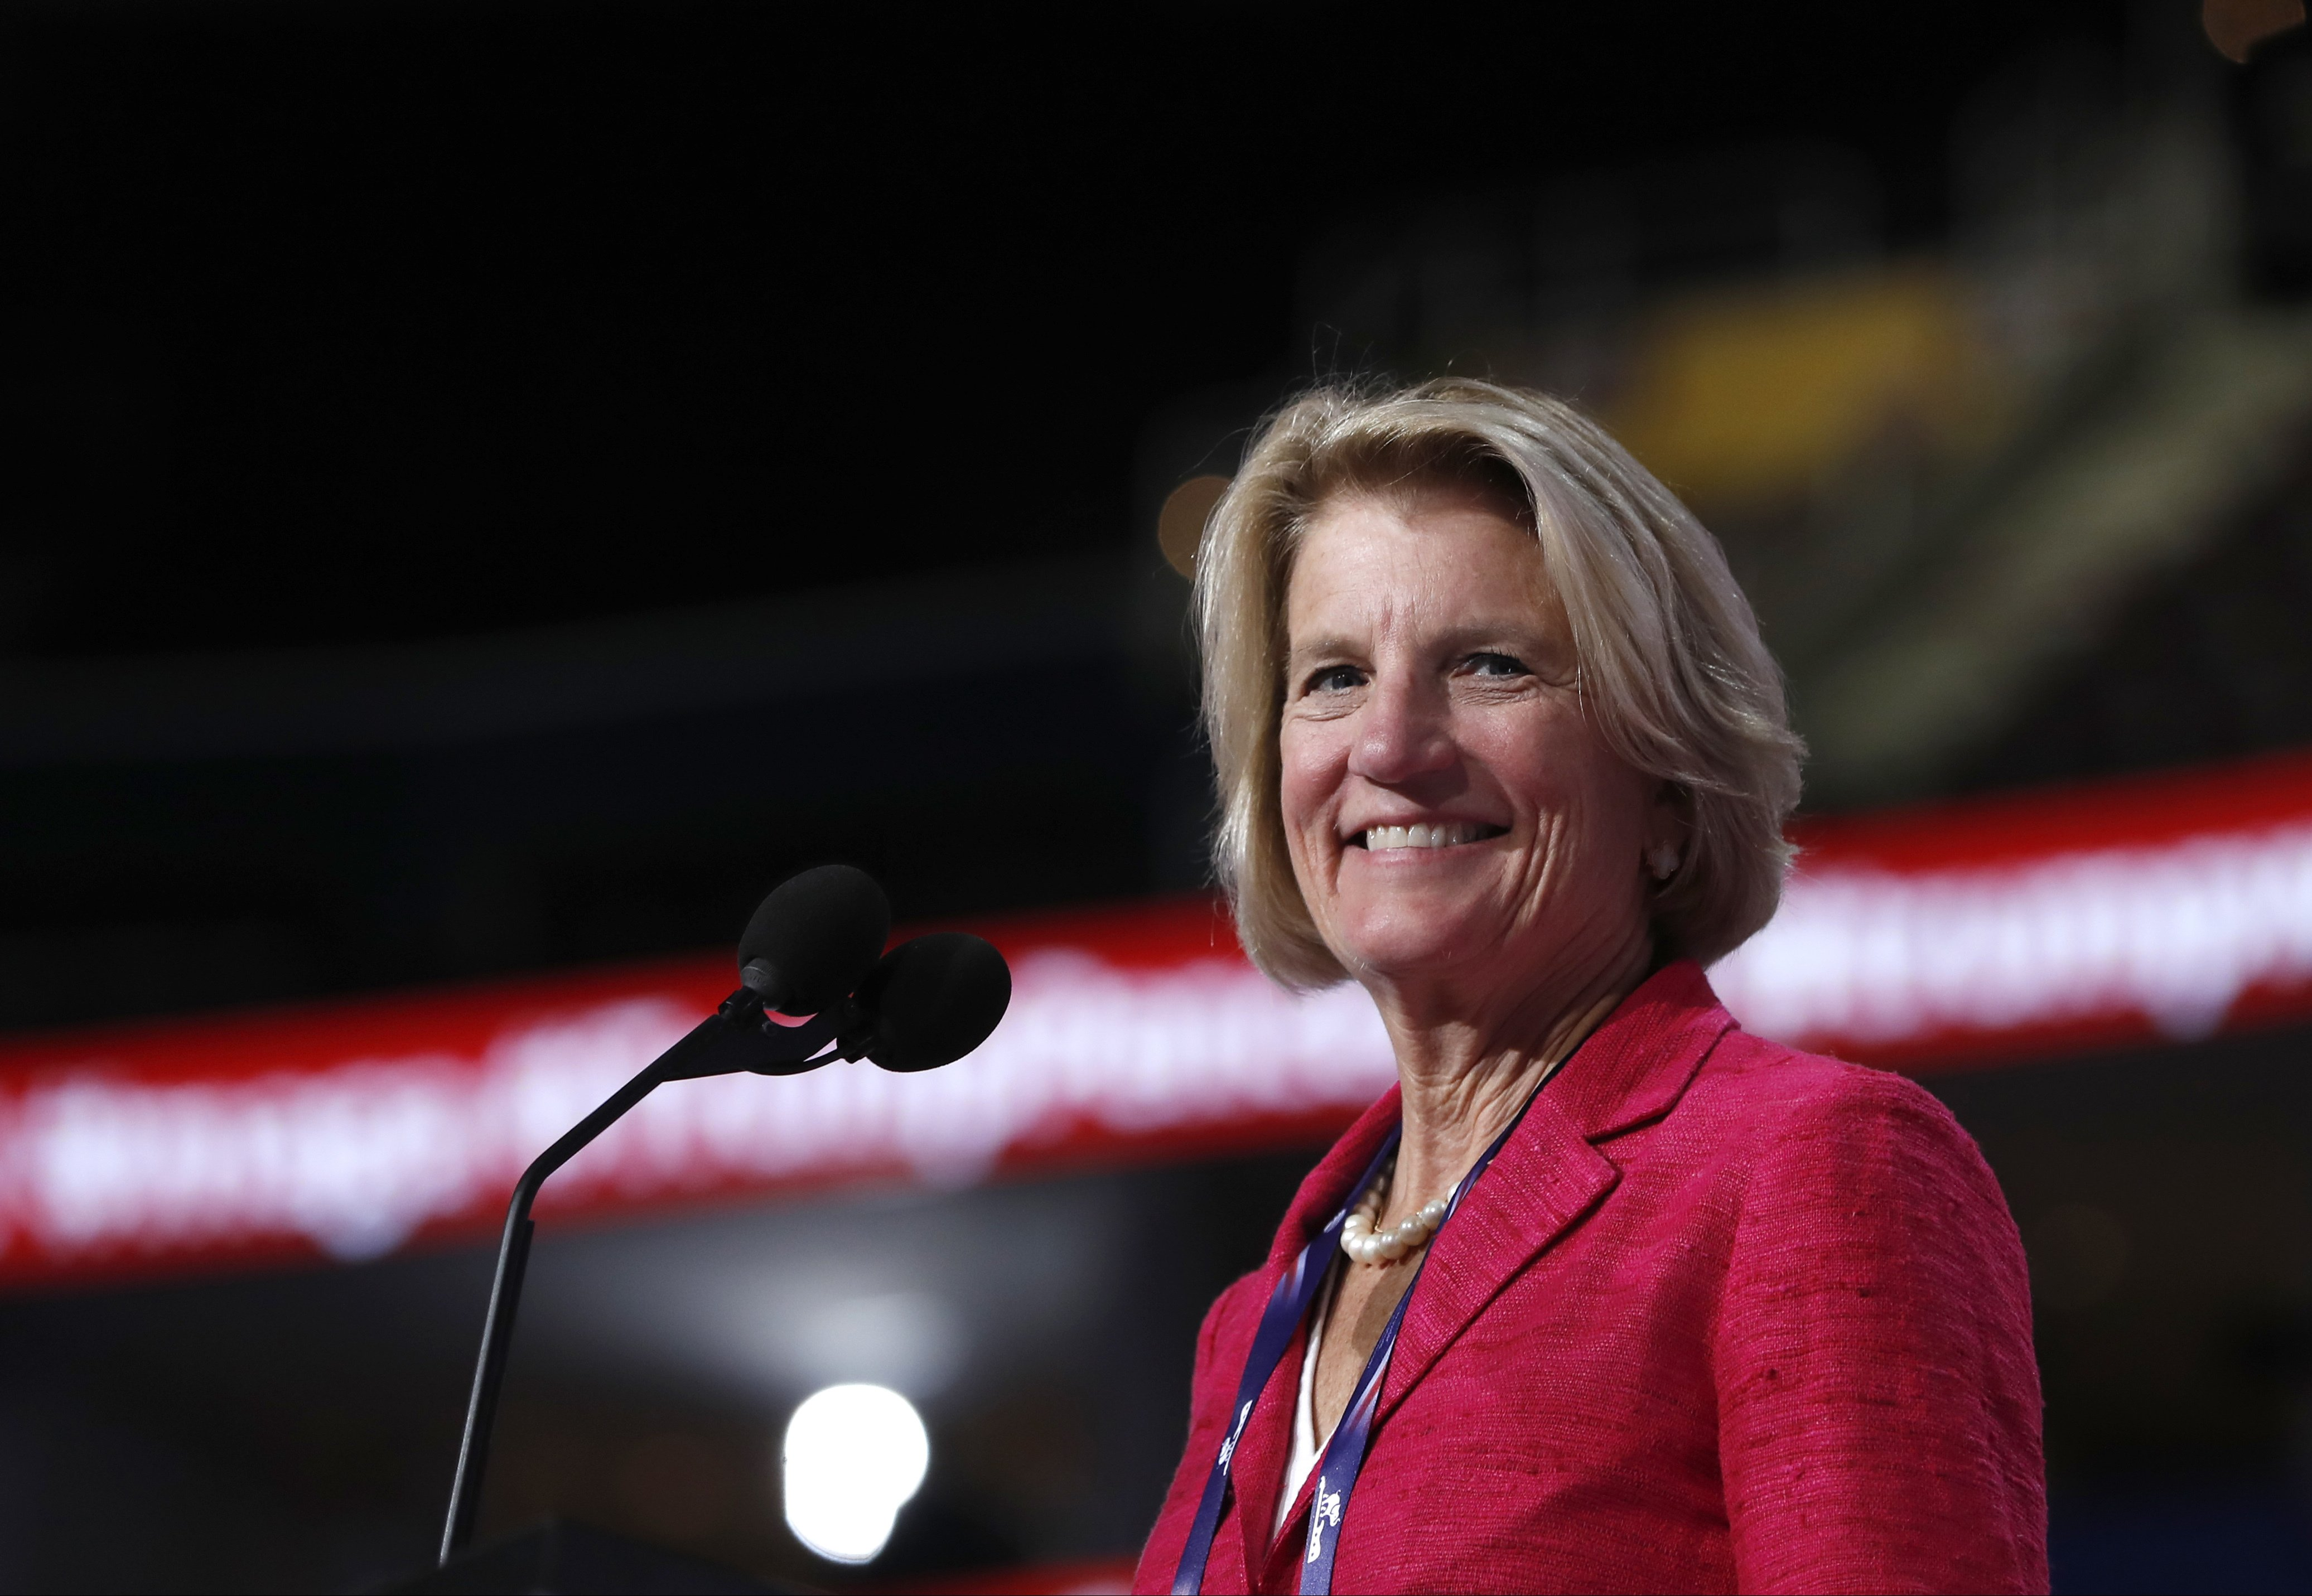 Sen. Shelley Moore Capito, checks out the stage before the opening session of the Republican National Convention in Cleveland,July 18, 2016.